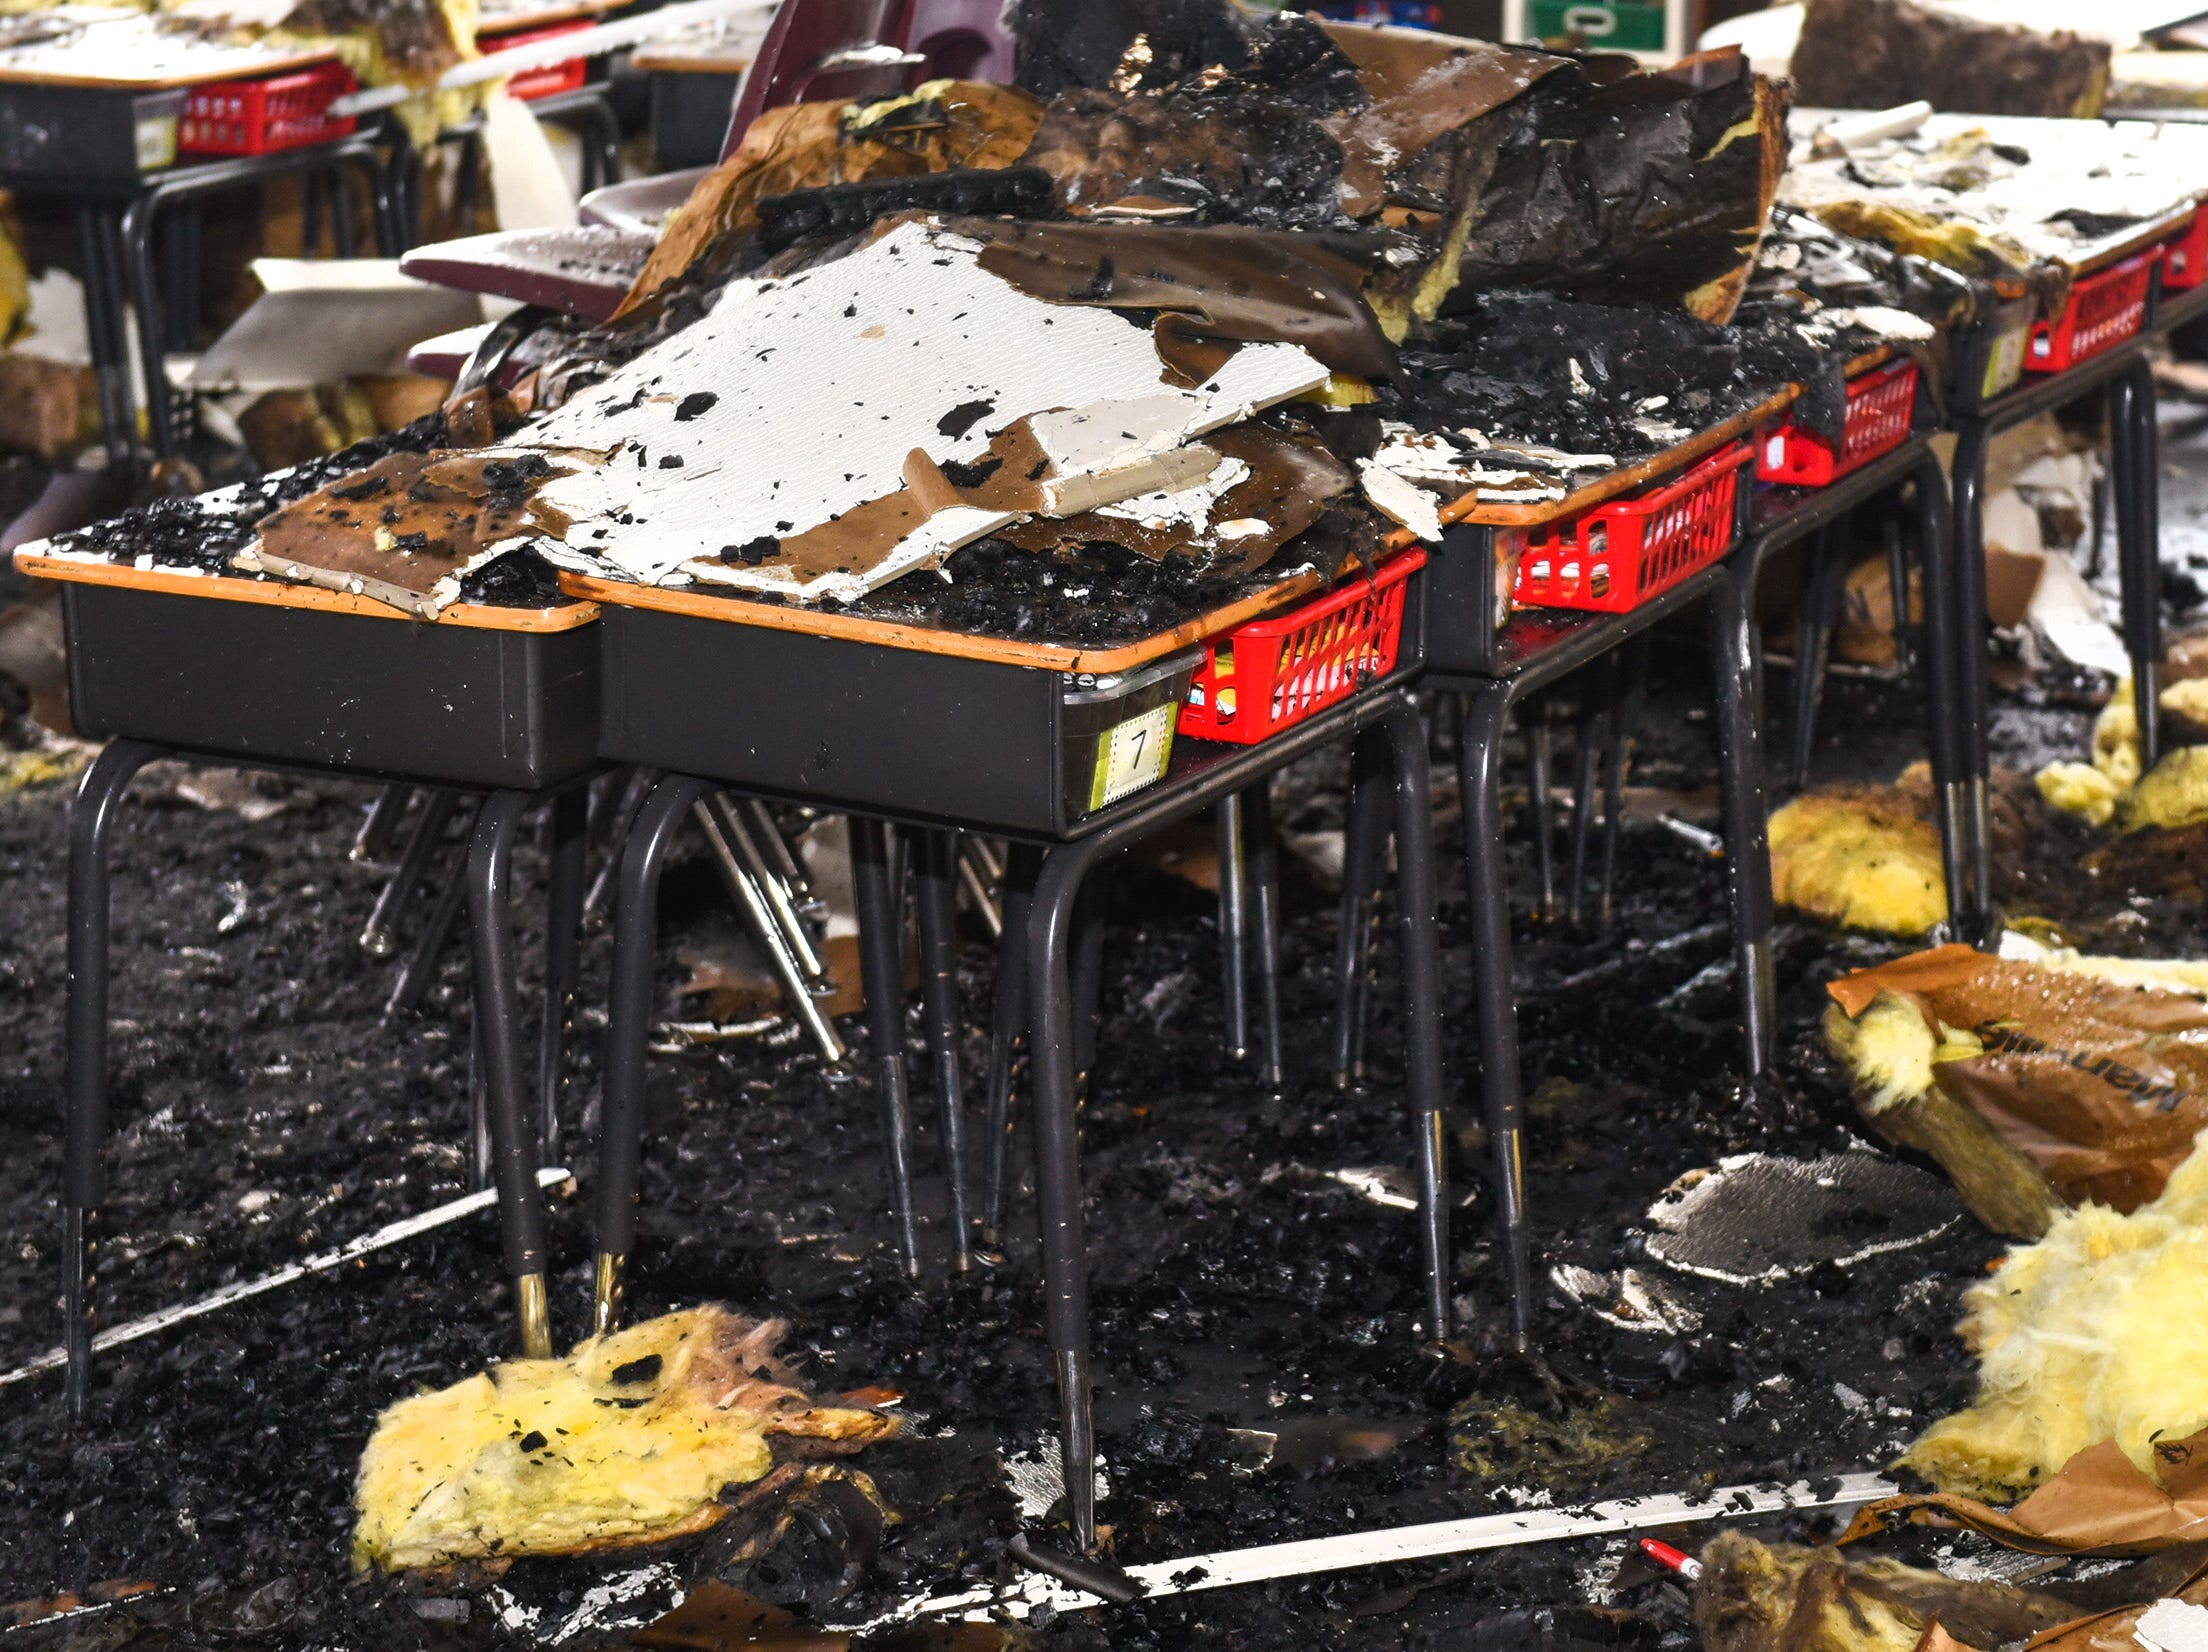 Damaged desks in a classroom at Pleasantview Elementary School shown Monday, Jan. 14, after a fire Sunday night in Sauk Rapids.